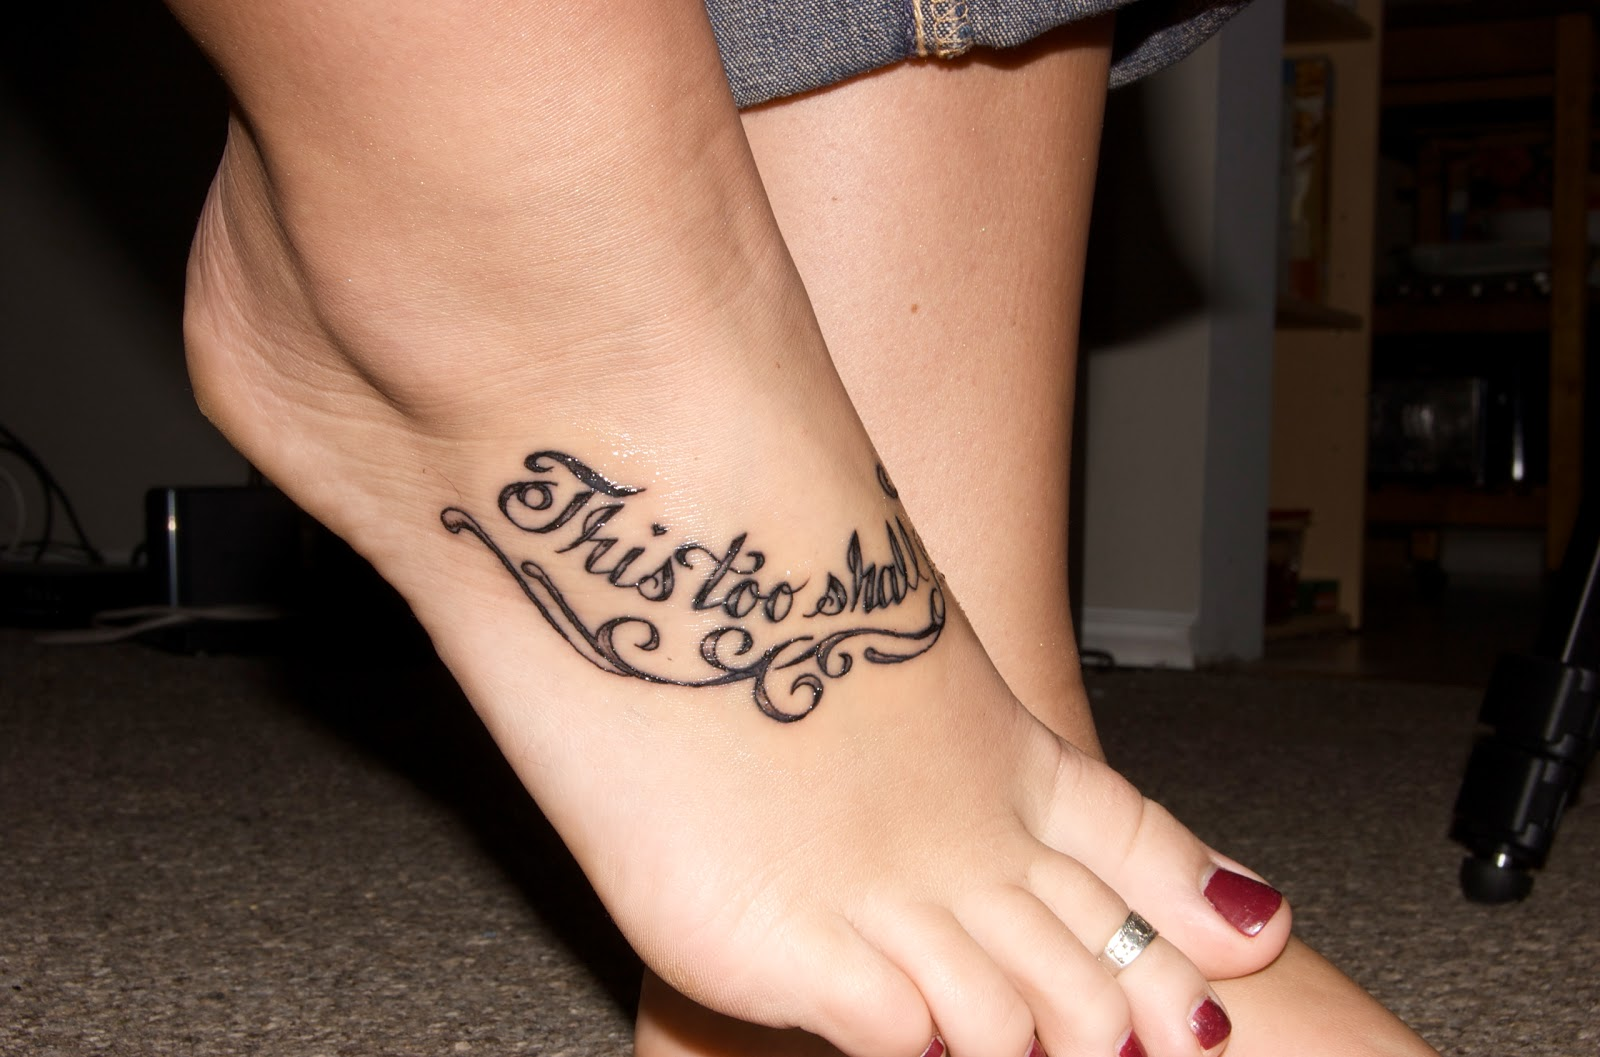 Foot Tattoo Design That Should Be Unique Foot Tattoos Designs For